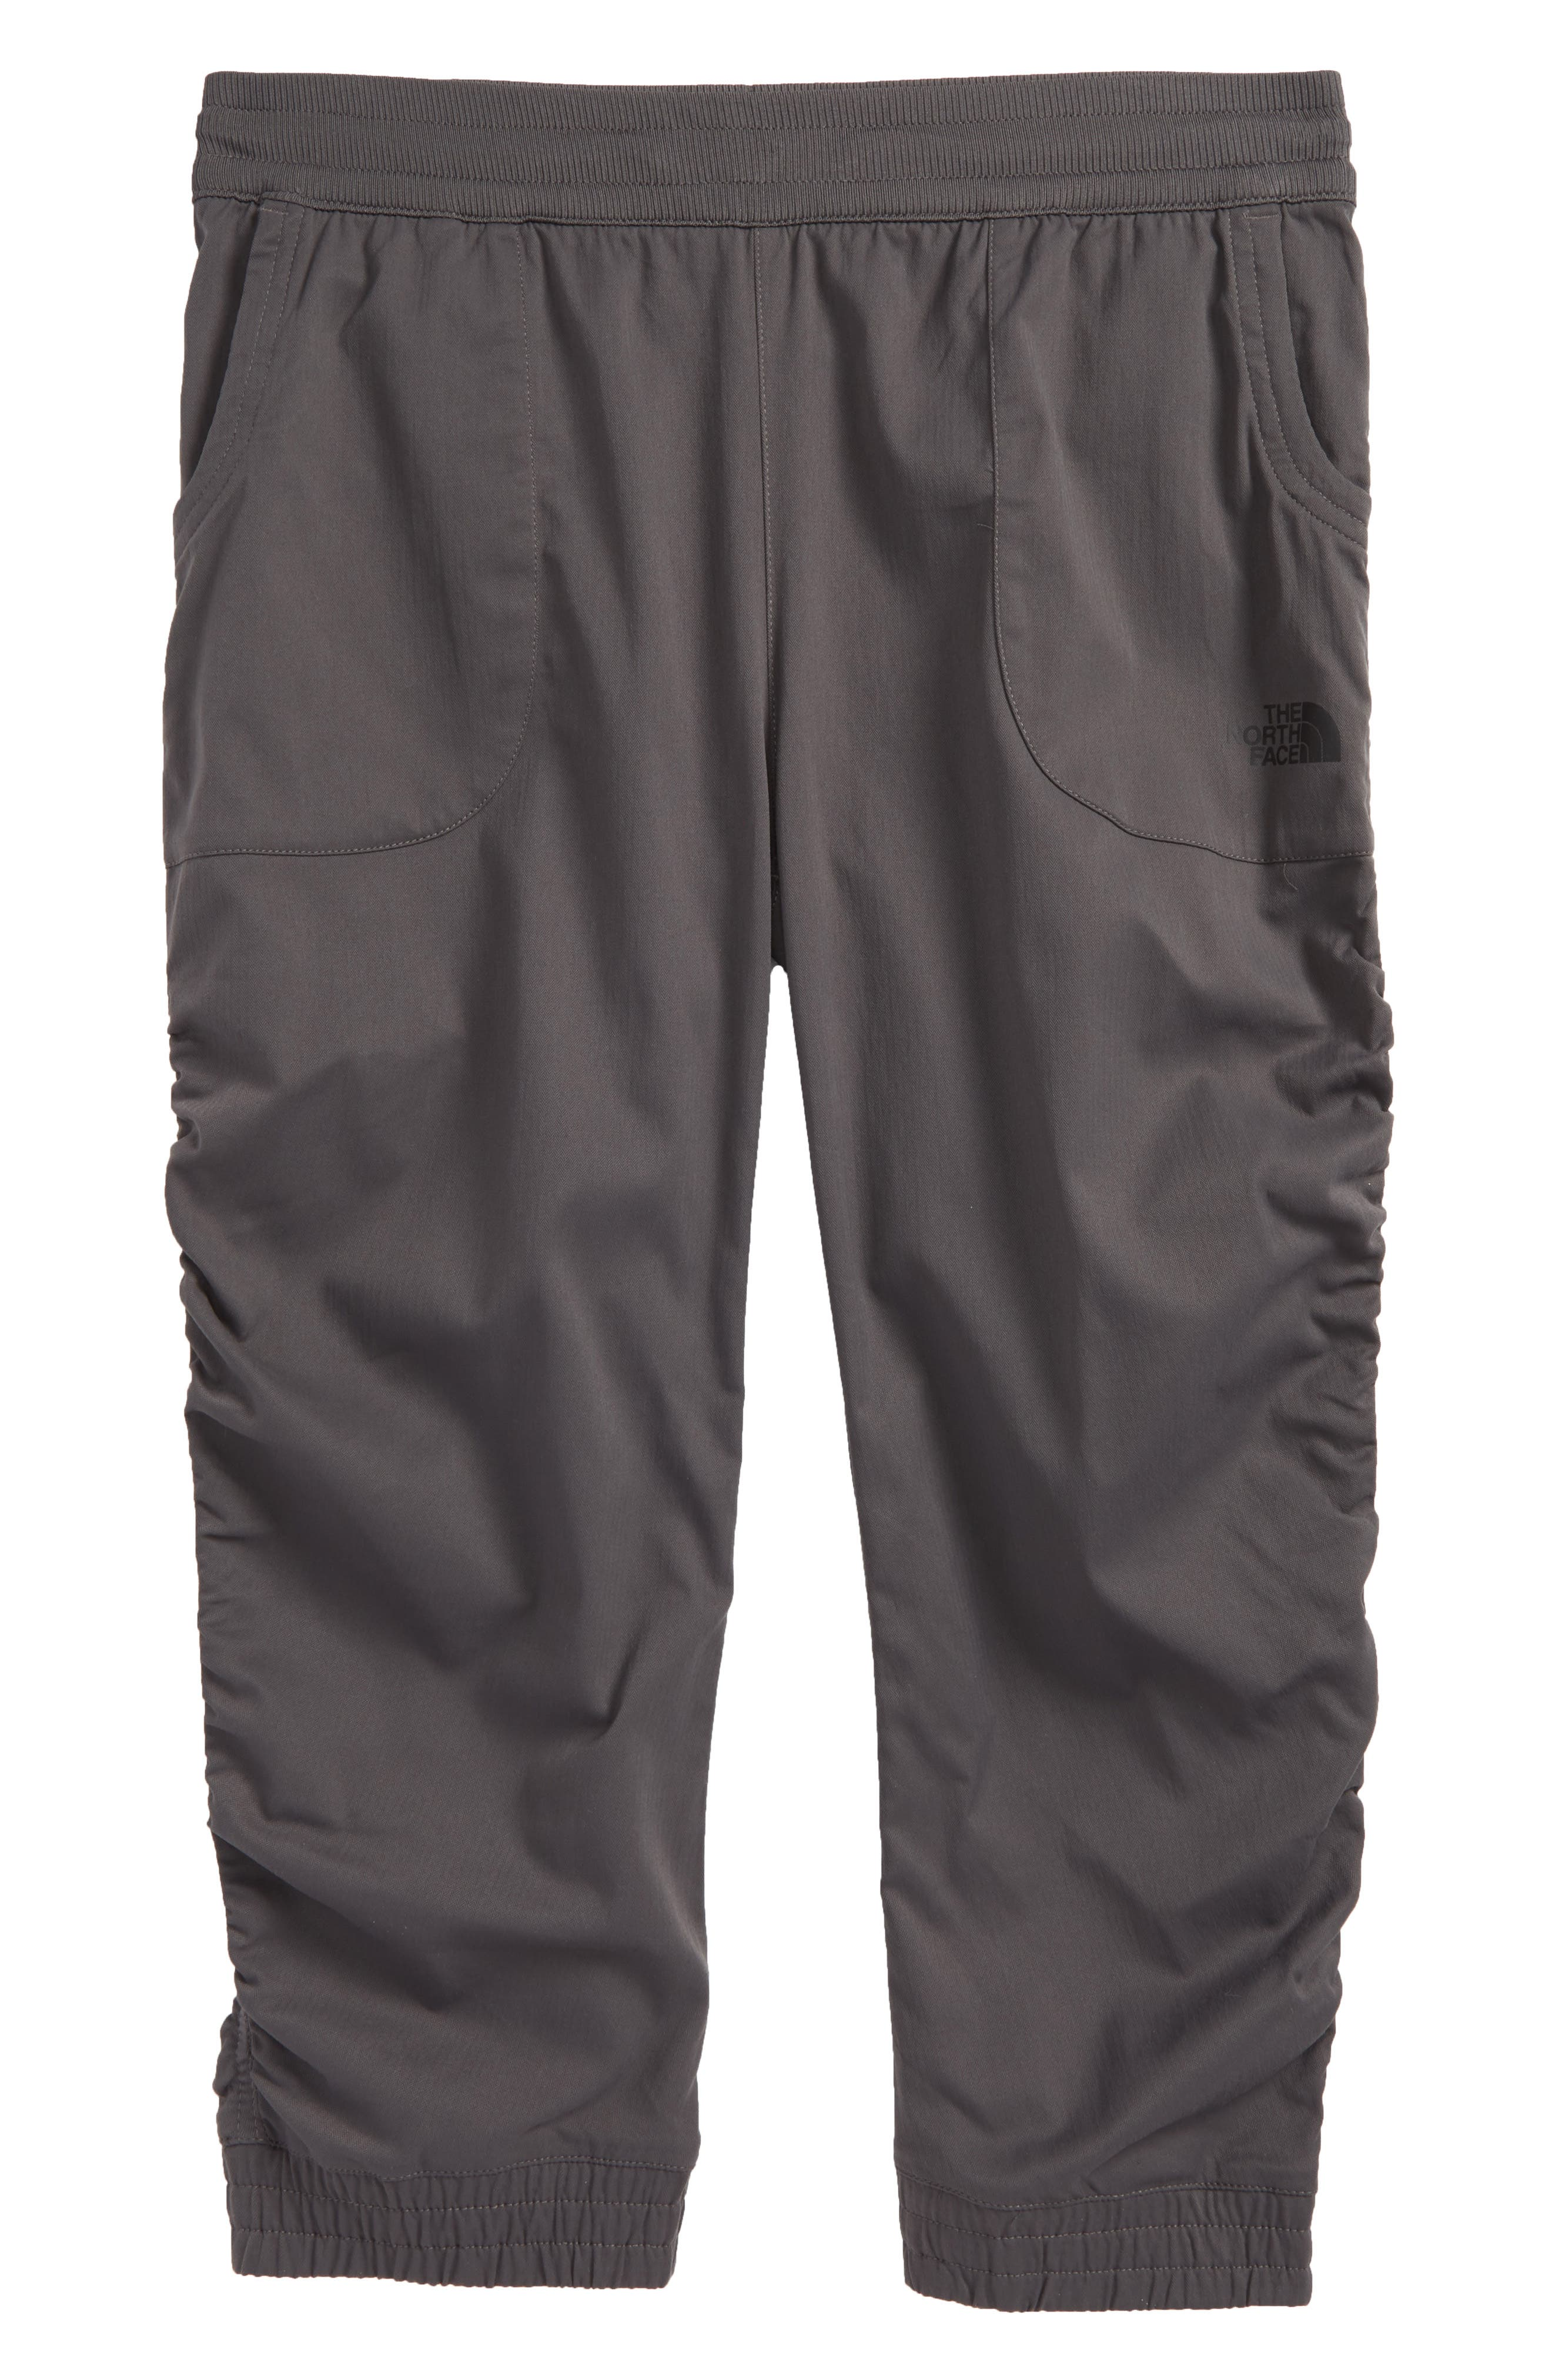 Aphrodite Pants,                         Main,                         color, Graphite Grey